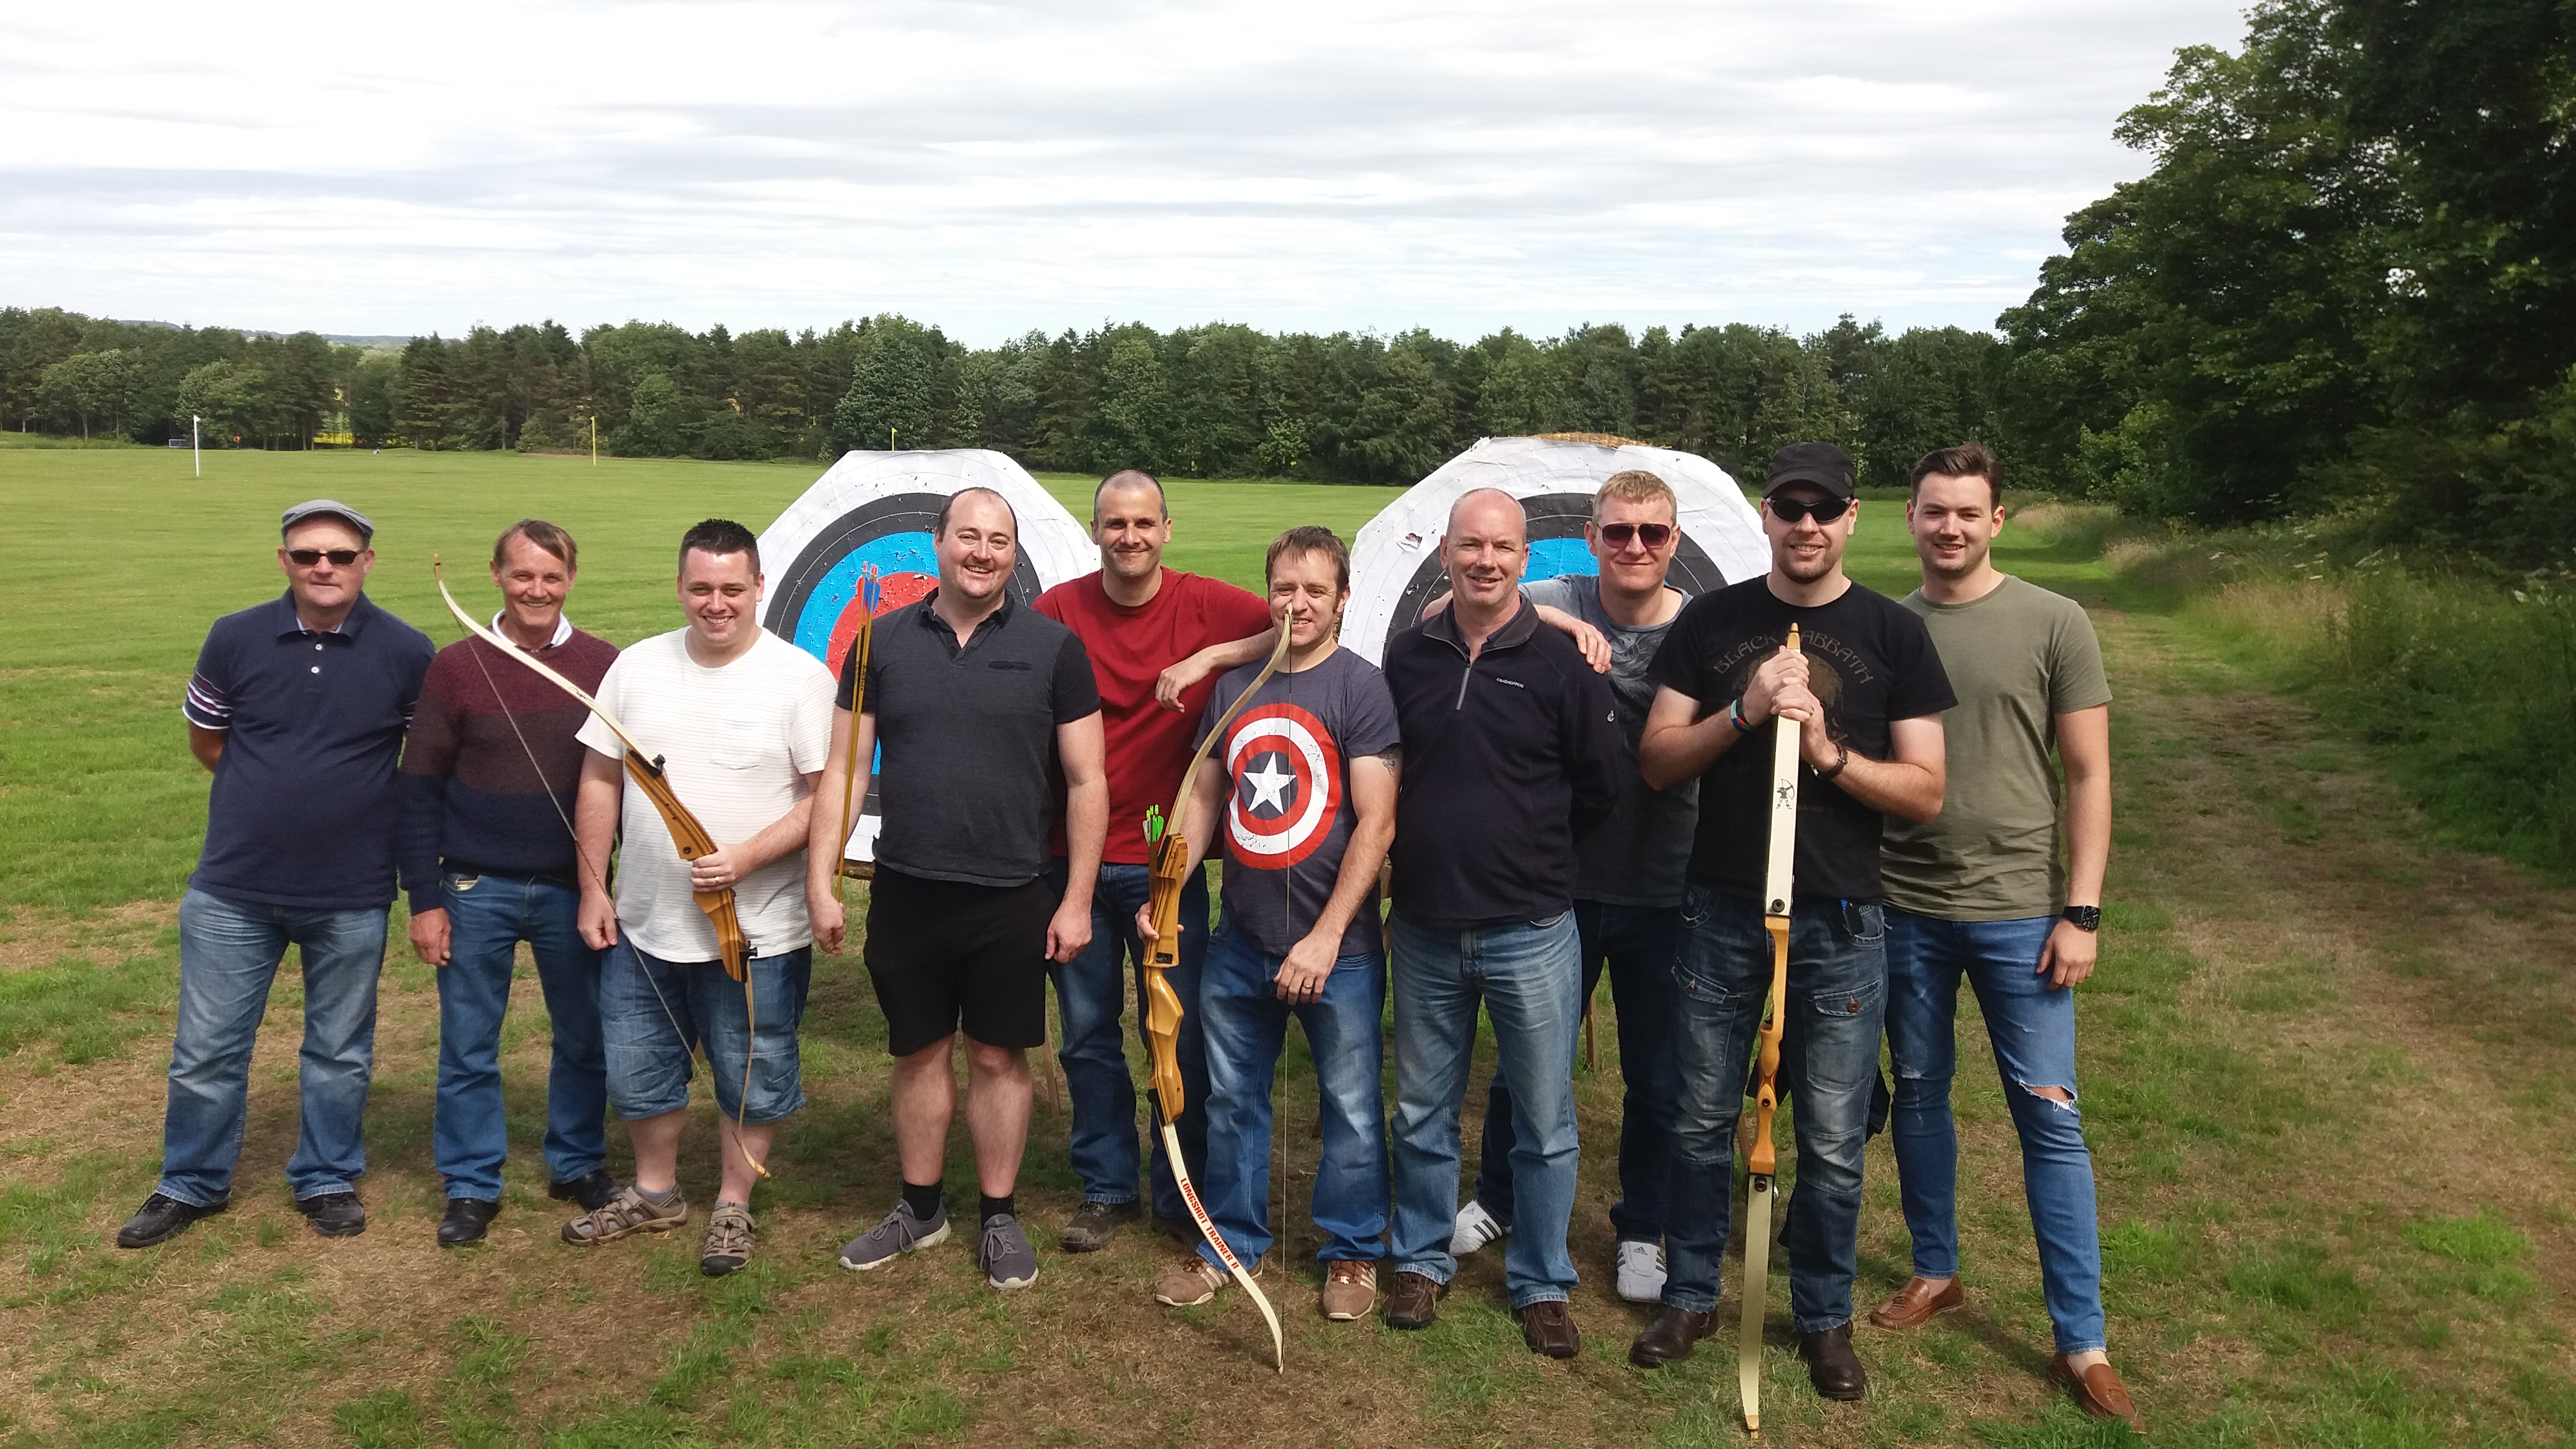 Group of men enjoying an archery session with Turboventure in Woodman's field Matfen Newcastle